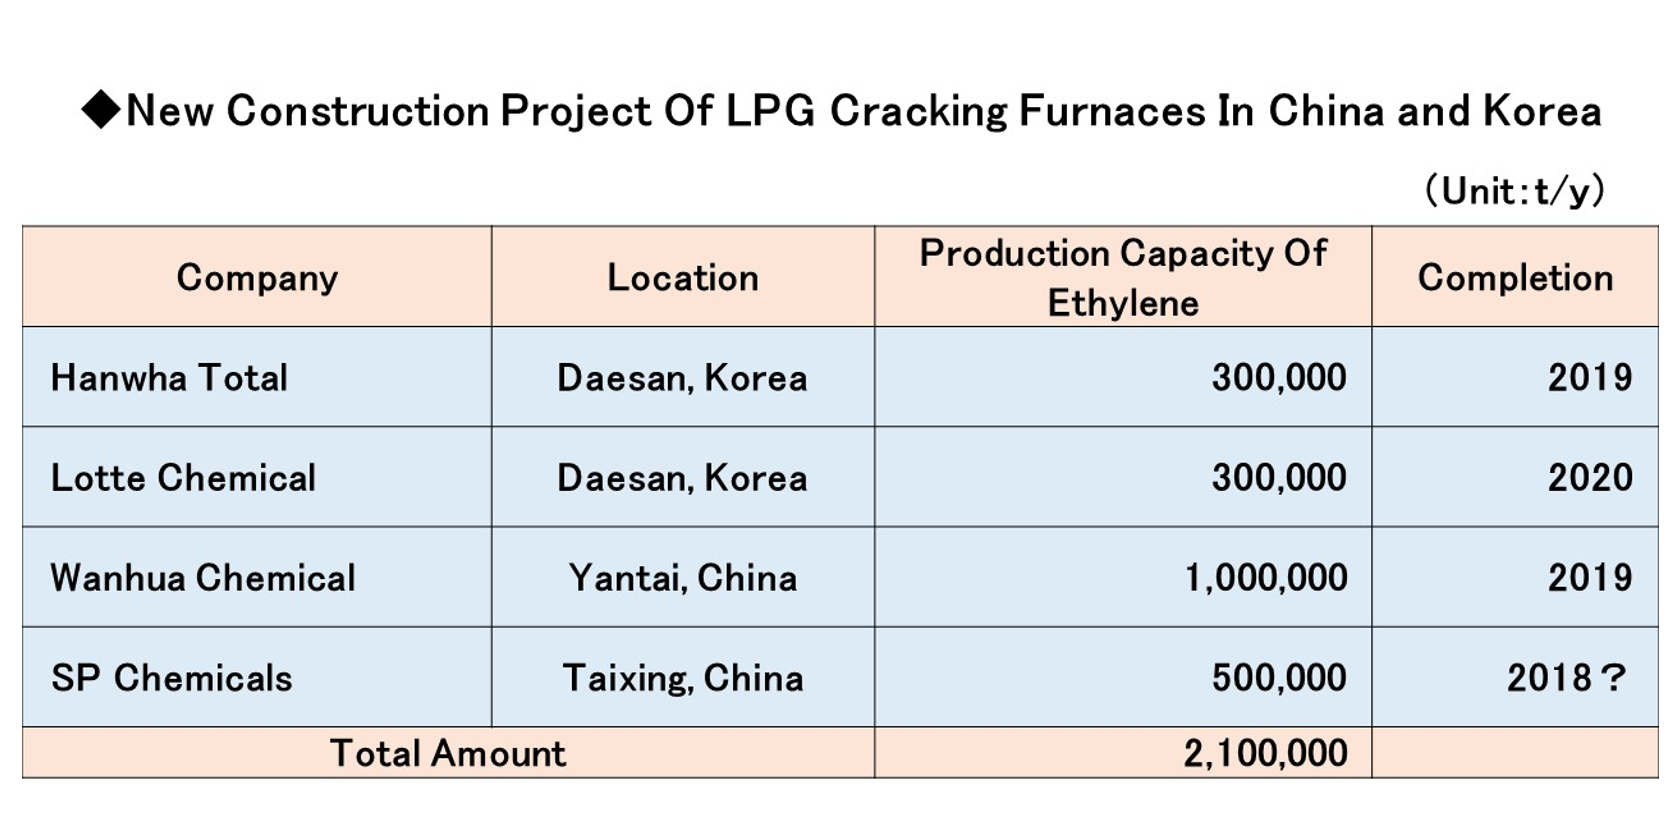 Plans for New LPG Cracking Furnaces Multiply in China, South Korea – Part 2